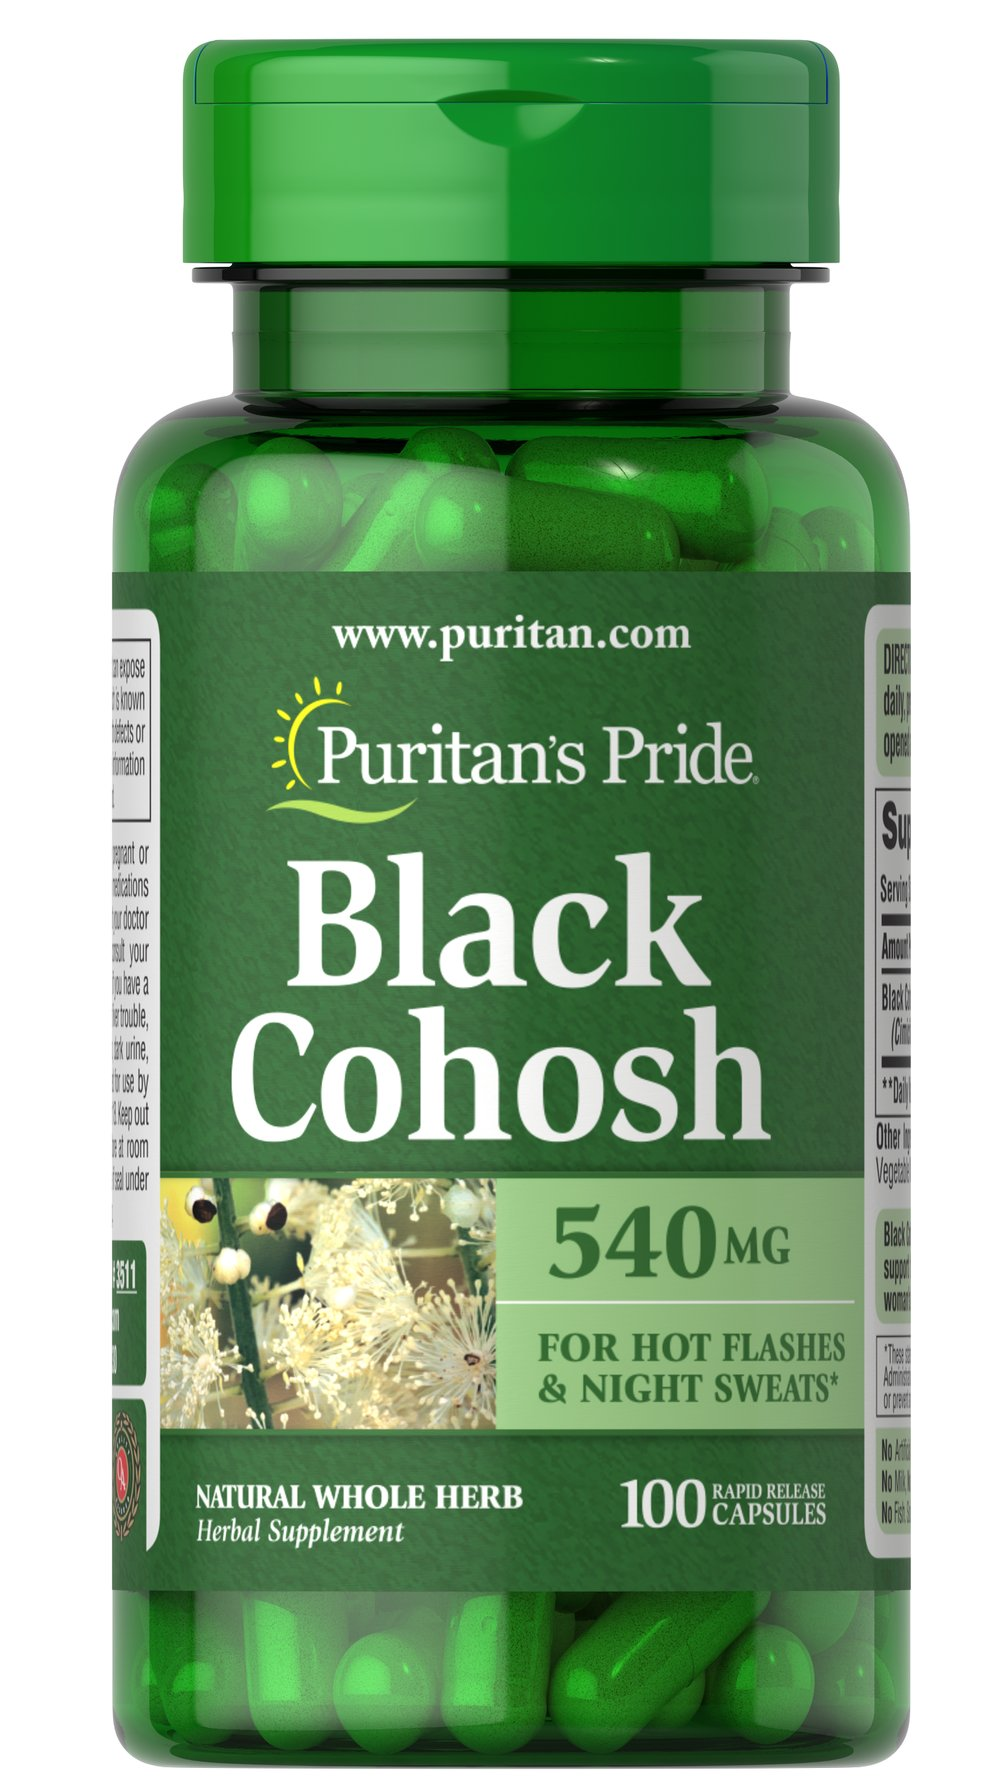 Black Cohosh 540 mg  100 Capsules 540 mg $16.12